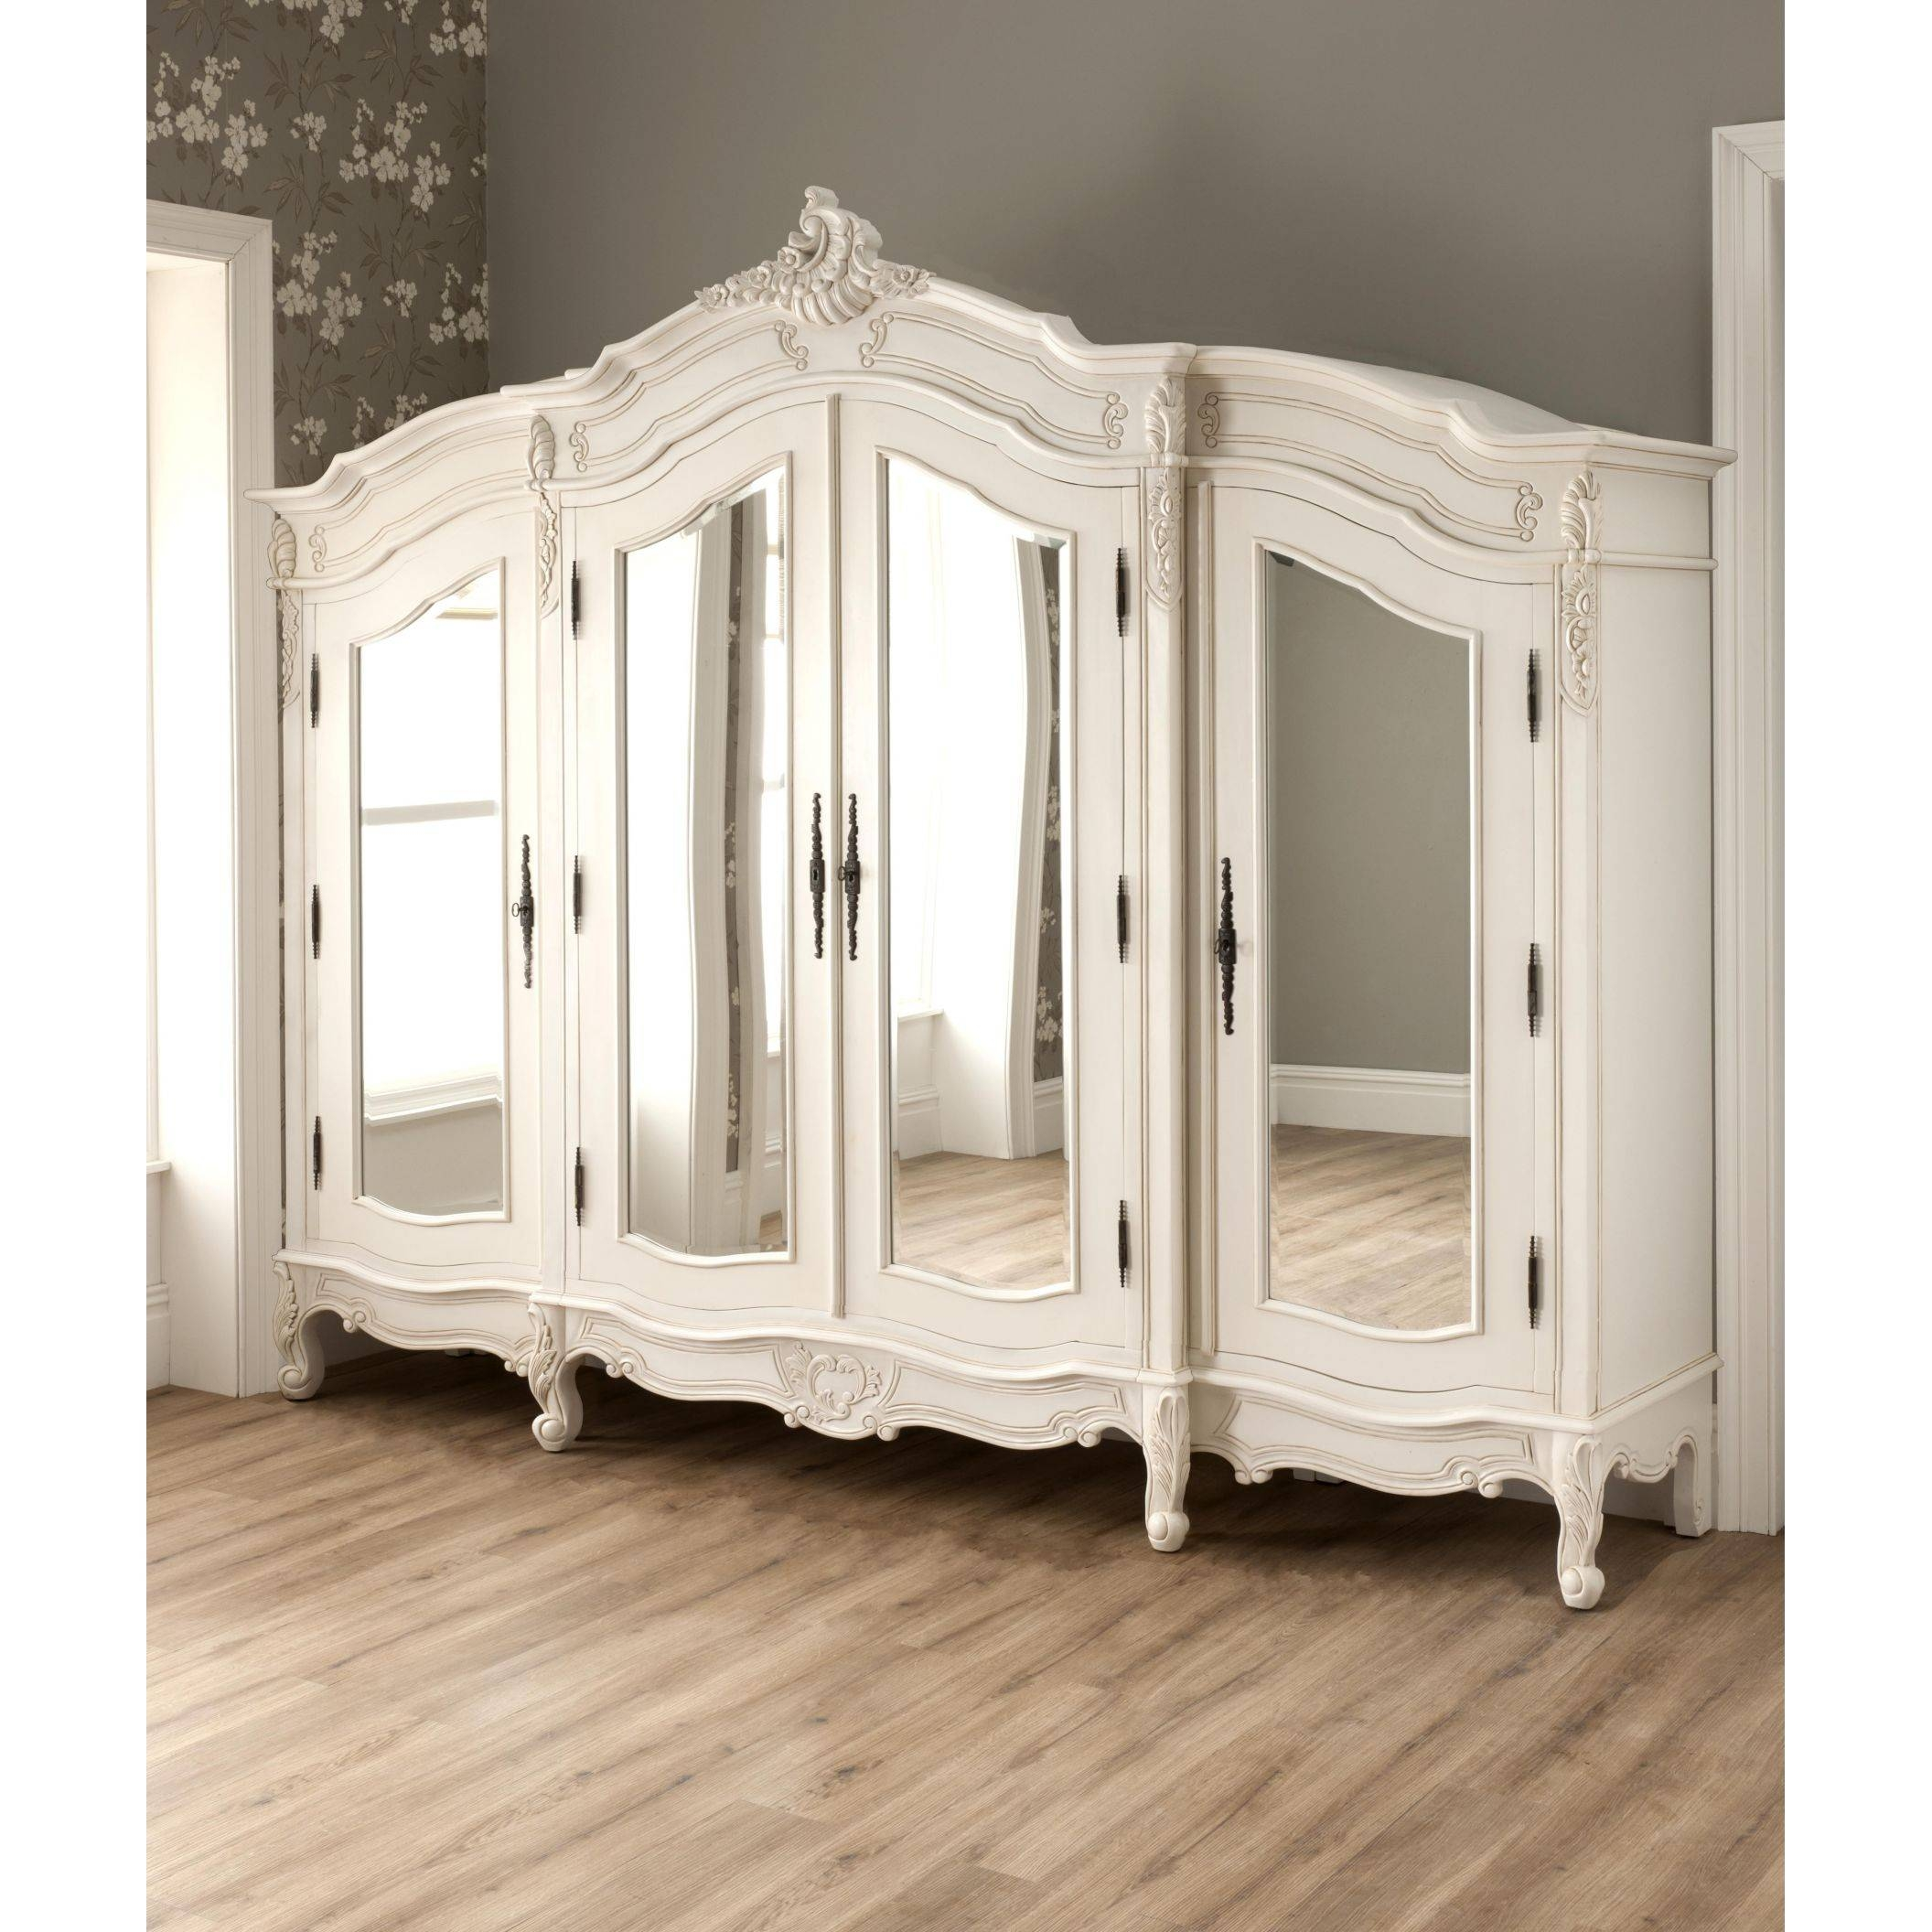 Large Antique French Wardrobe Compliments Our Fantastic Shabby throughout Large Shabby Chic Wardrobes (Image 4 of 15)